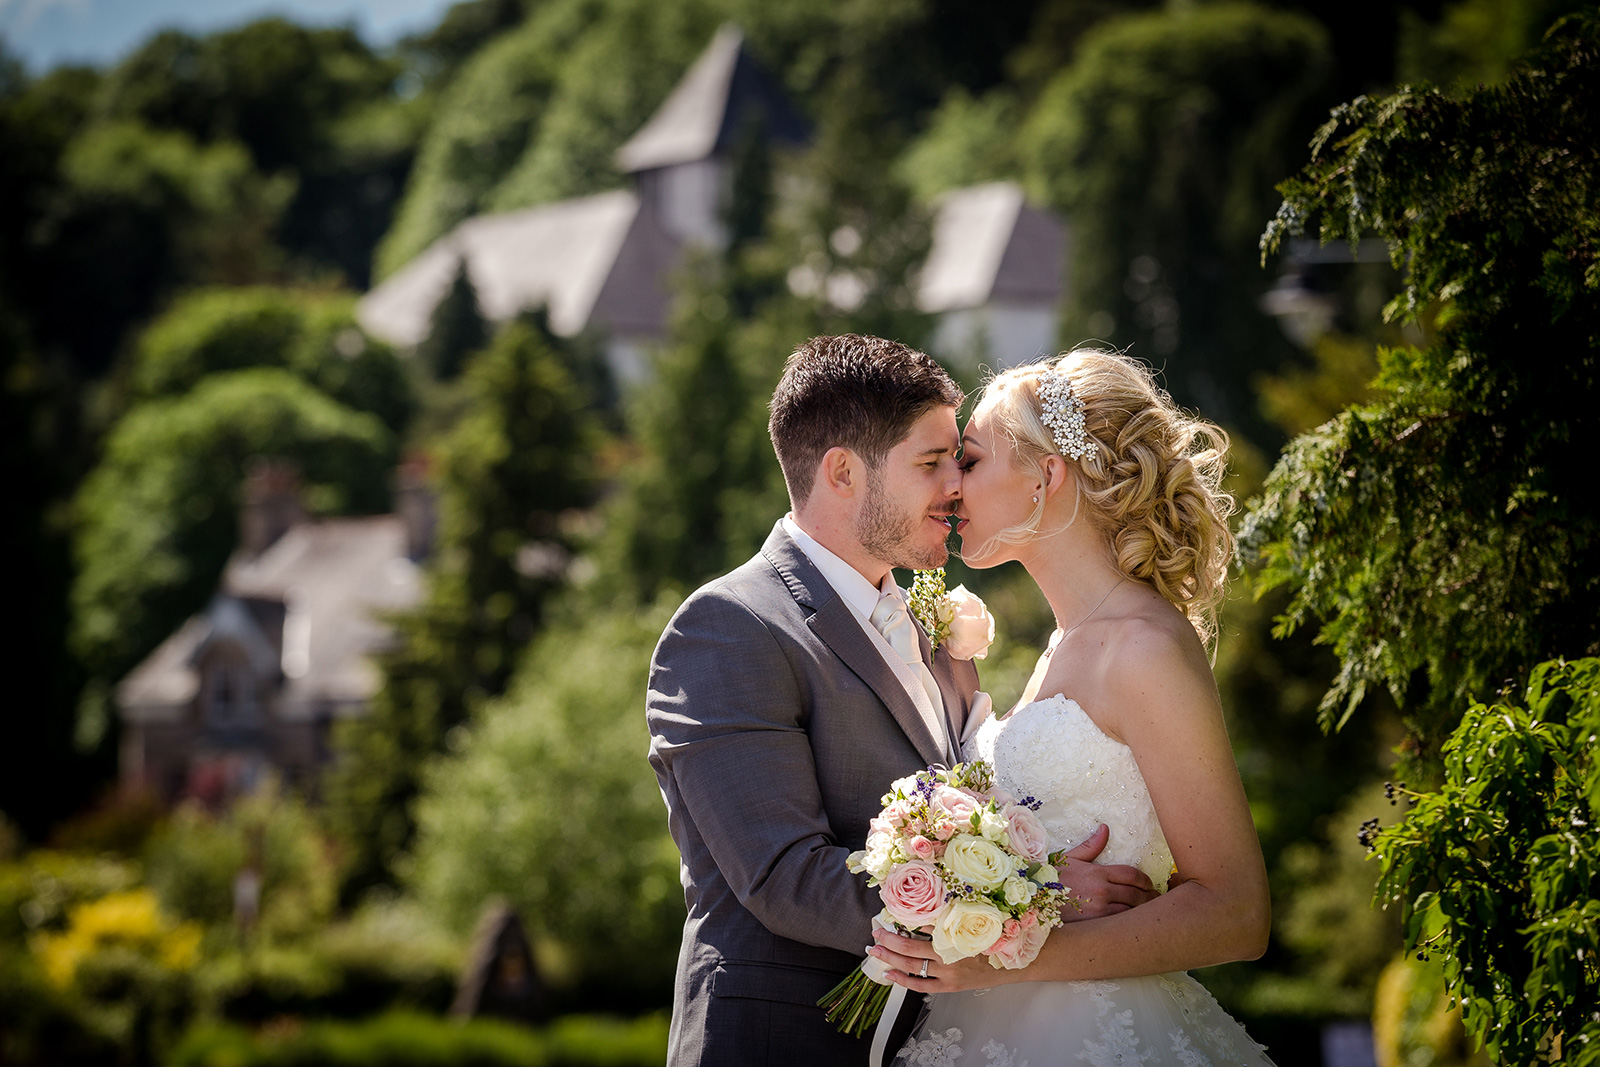 Michelle & Chris's Grange Hotel Wedding in the Lake District